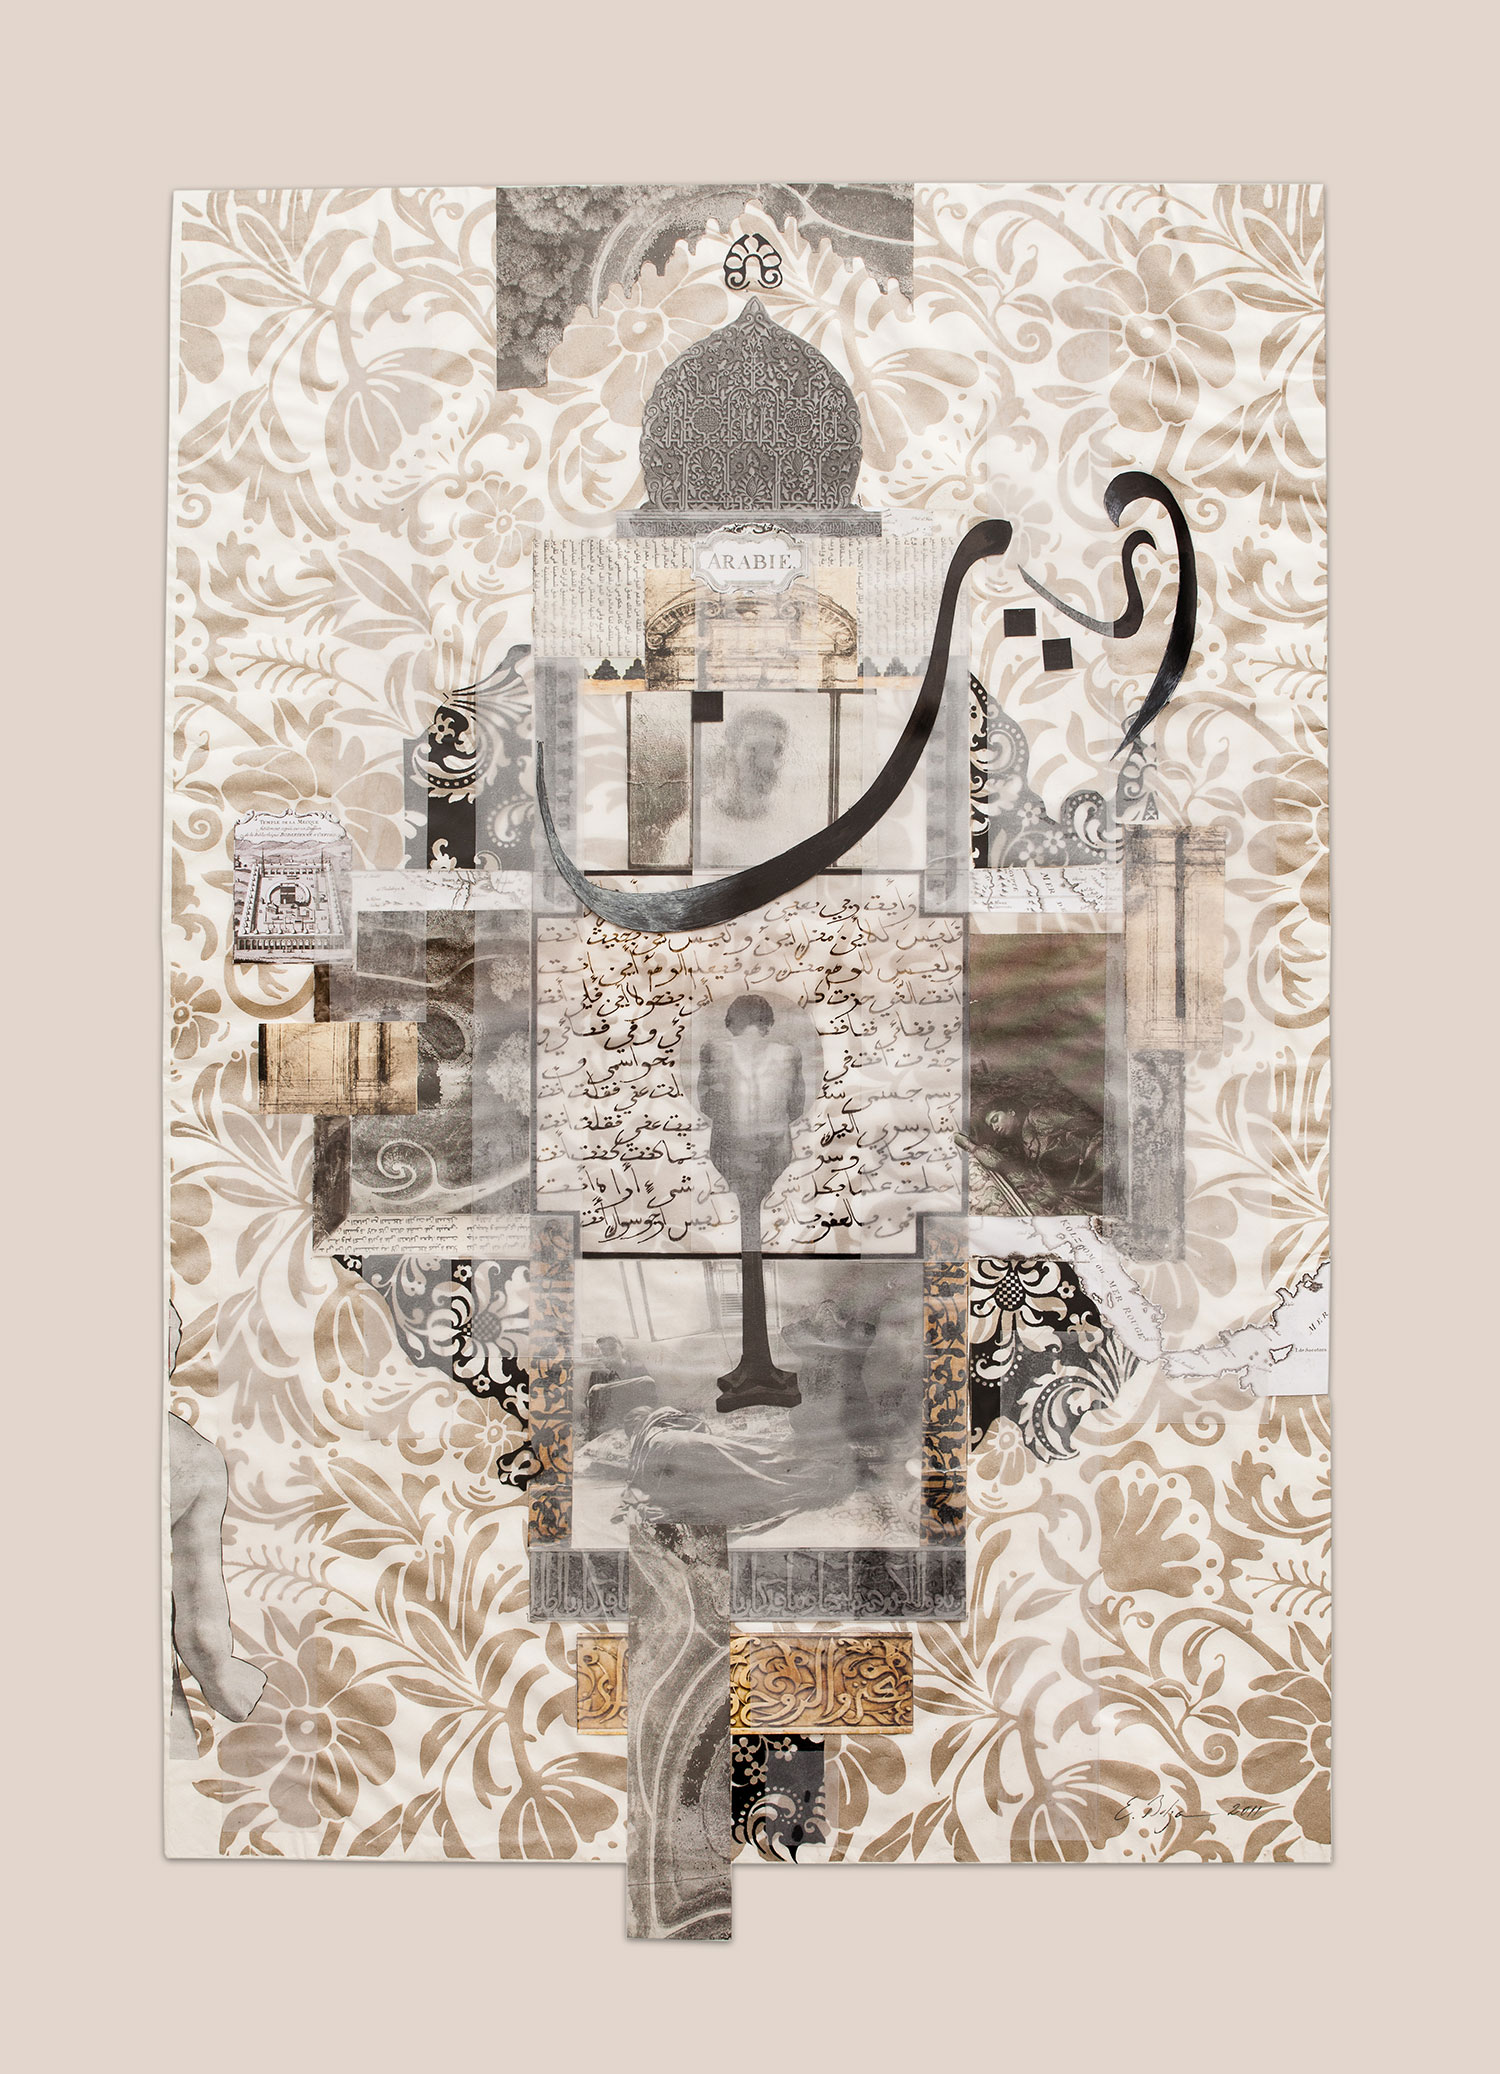 Dream of a Talismanic Shirt  Paper, Indian ink and gesso on paper 82 x 57.5 cm 2010